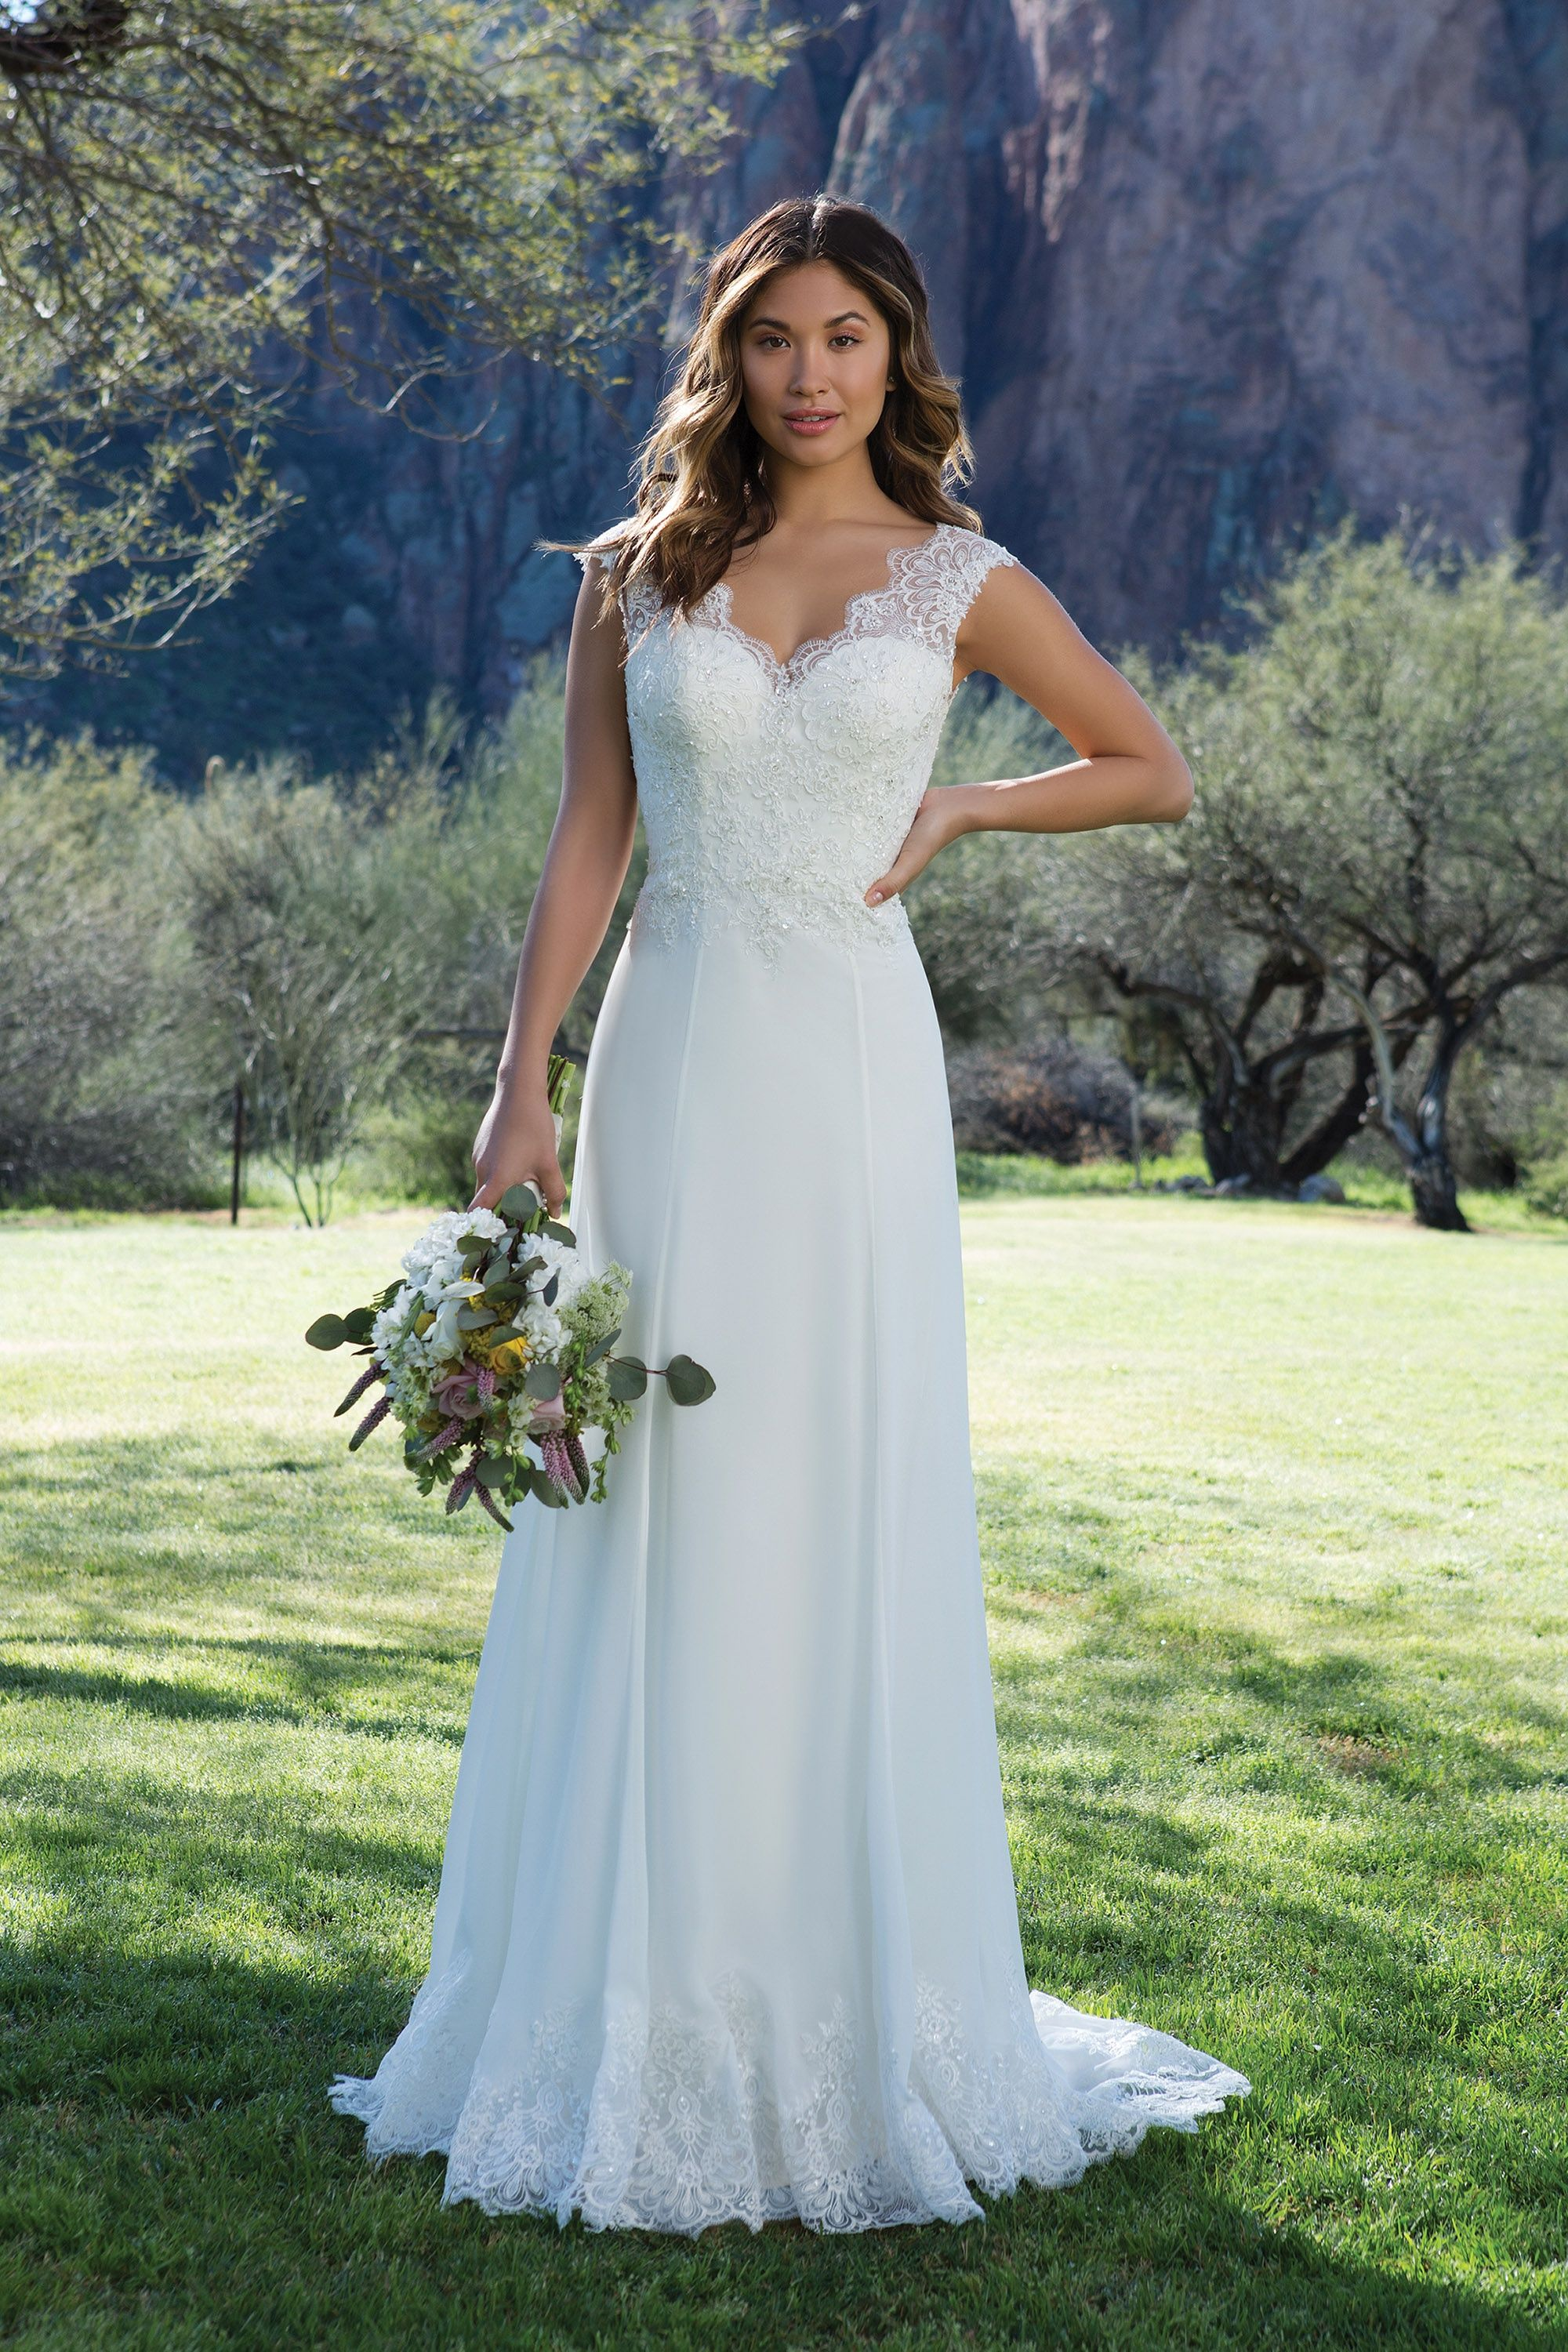 Sweetheart Gowns 1125 Ivory Size 10 Romantic Lace and Chiffon Gown ...